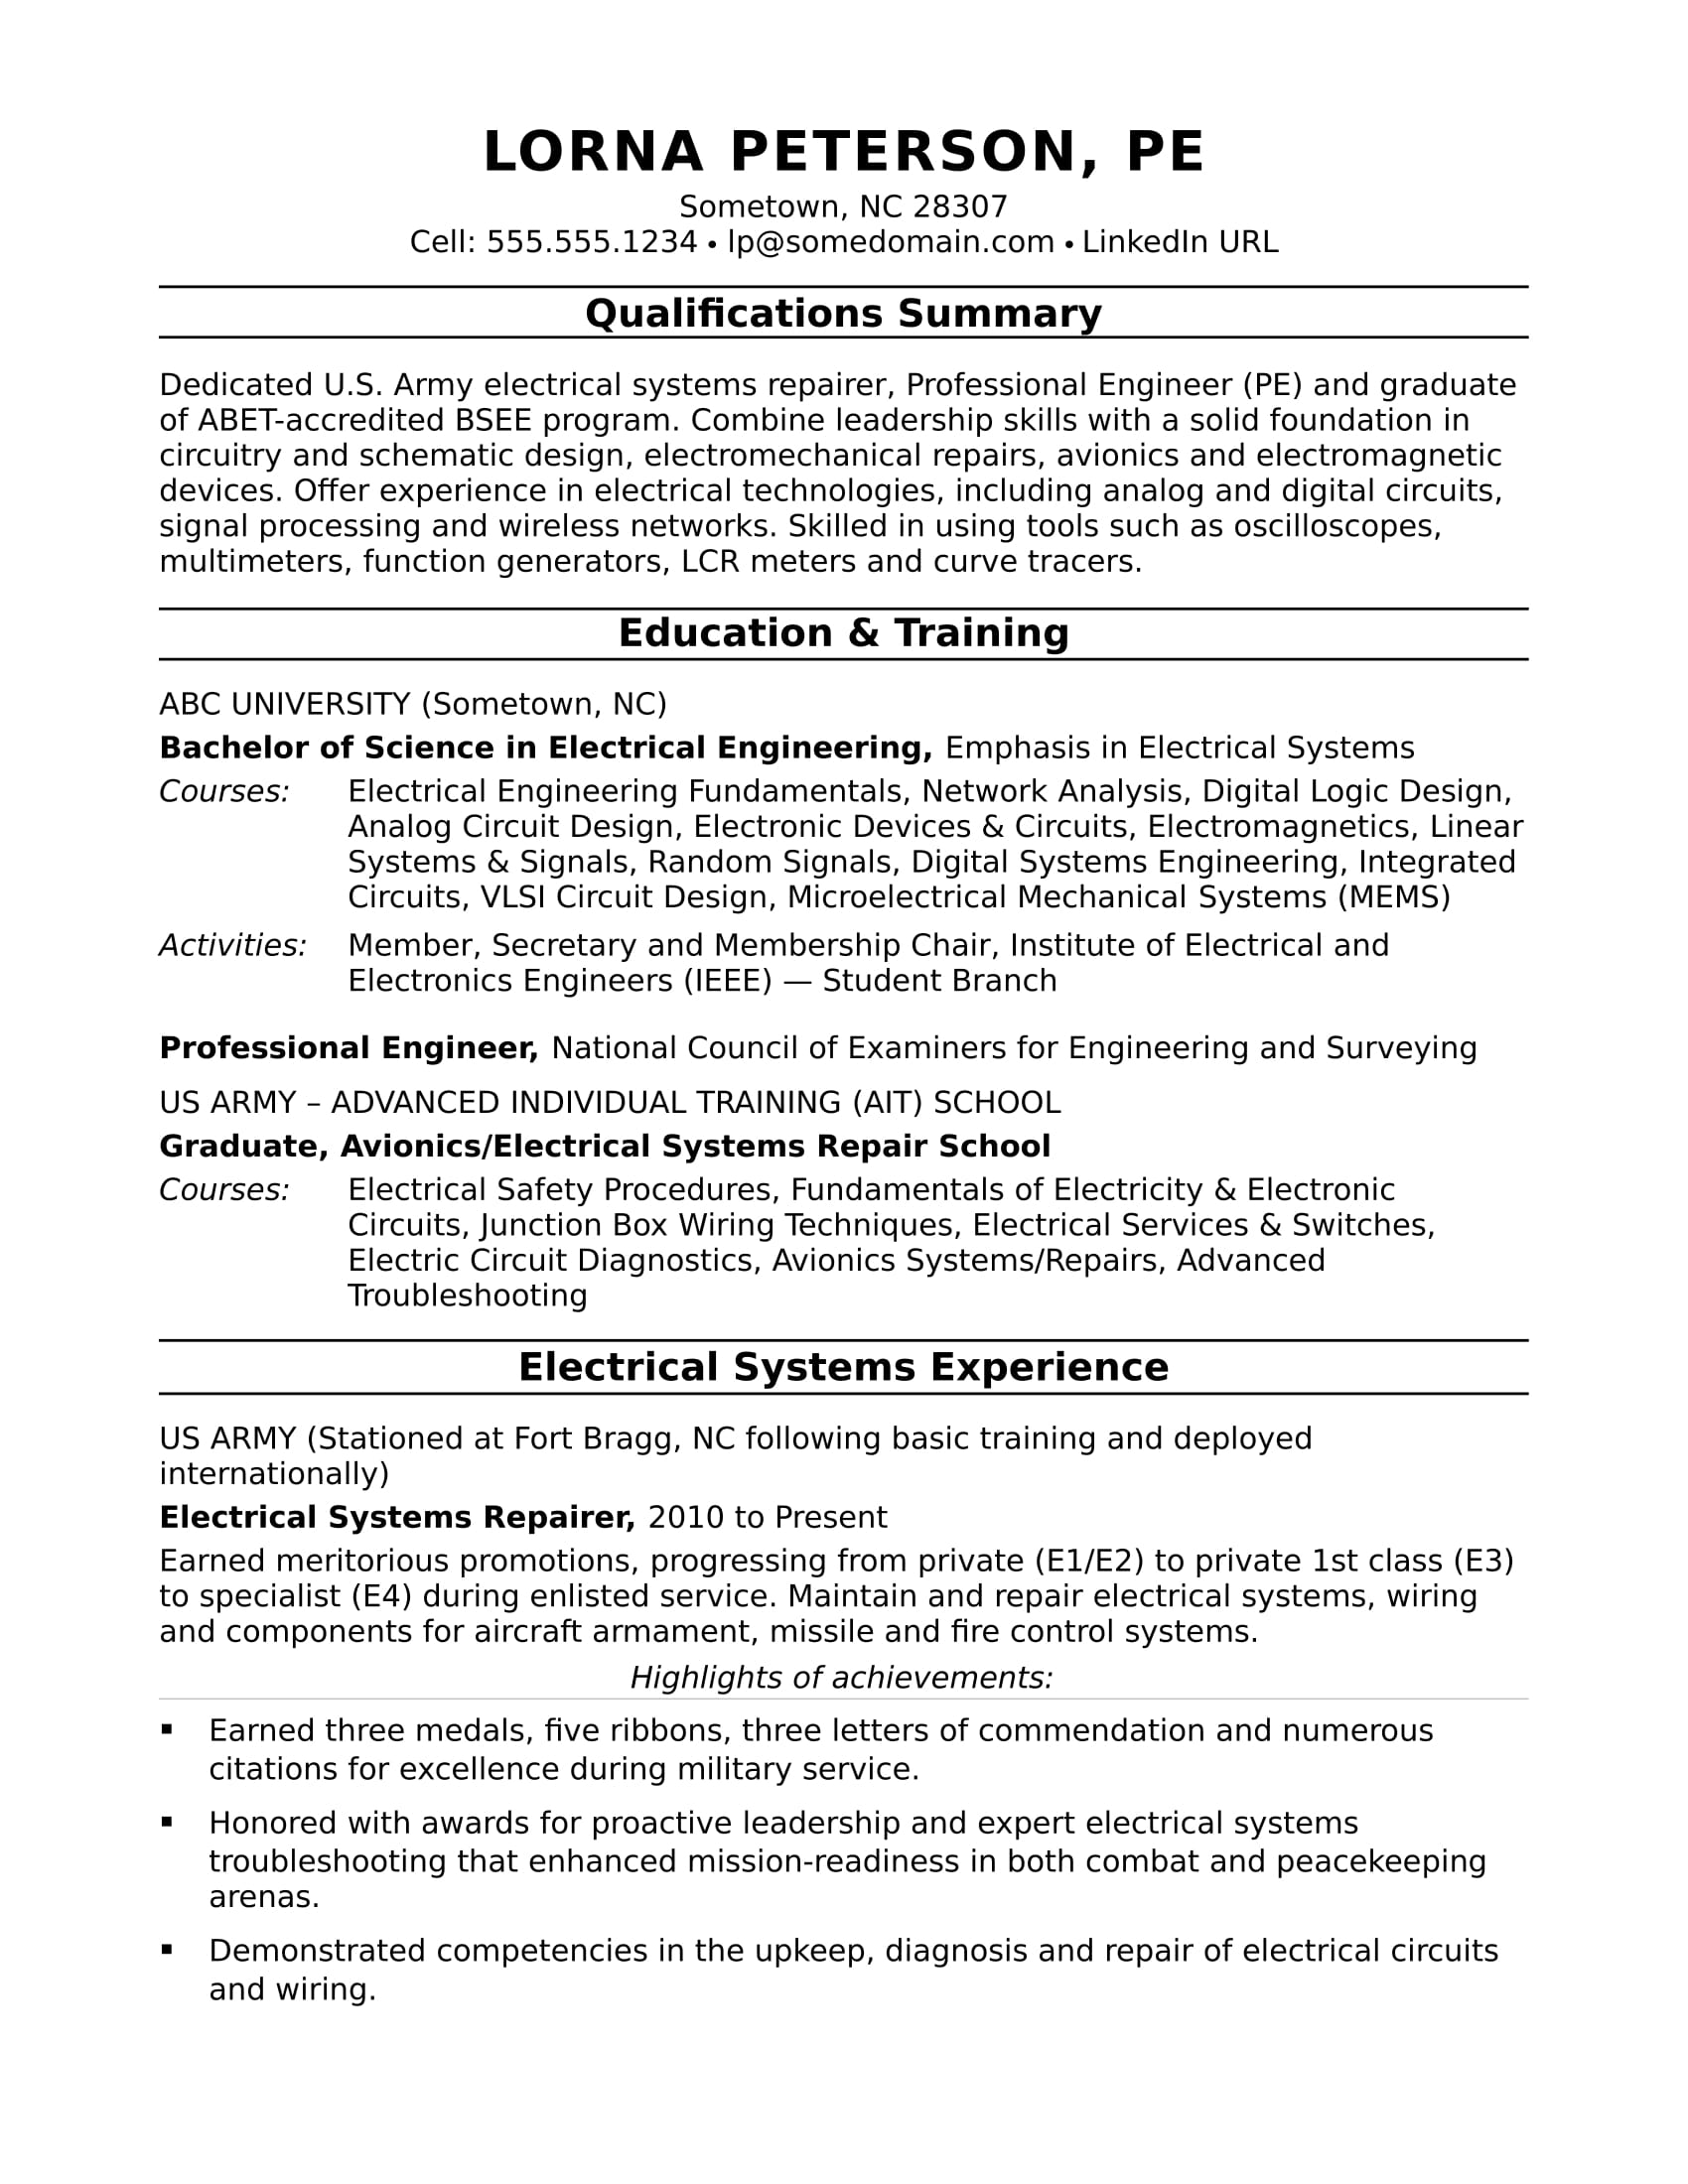 Sample Resume For A Midlevel Electrical Engineer  Electrical Engineering Student Resume